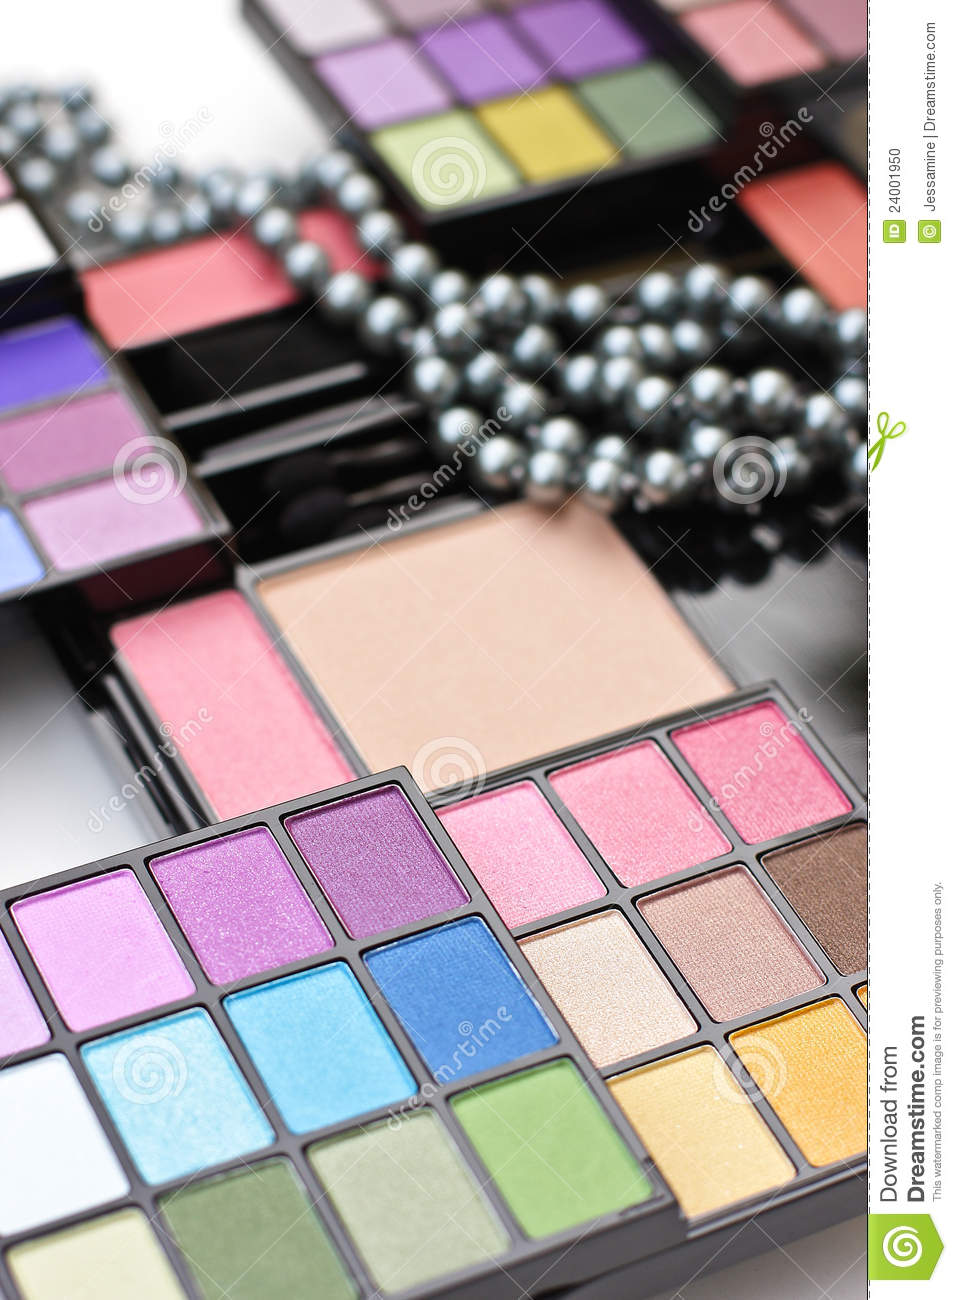 Professional Make Up Artist: Professional Make-up Palette Stock Photo